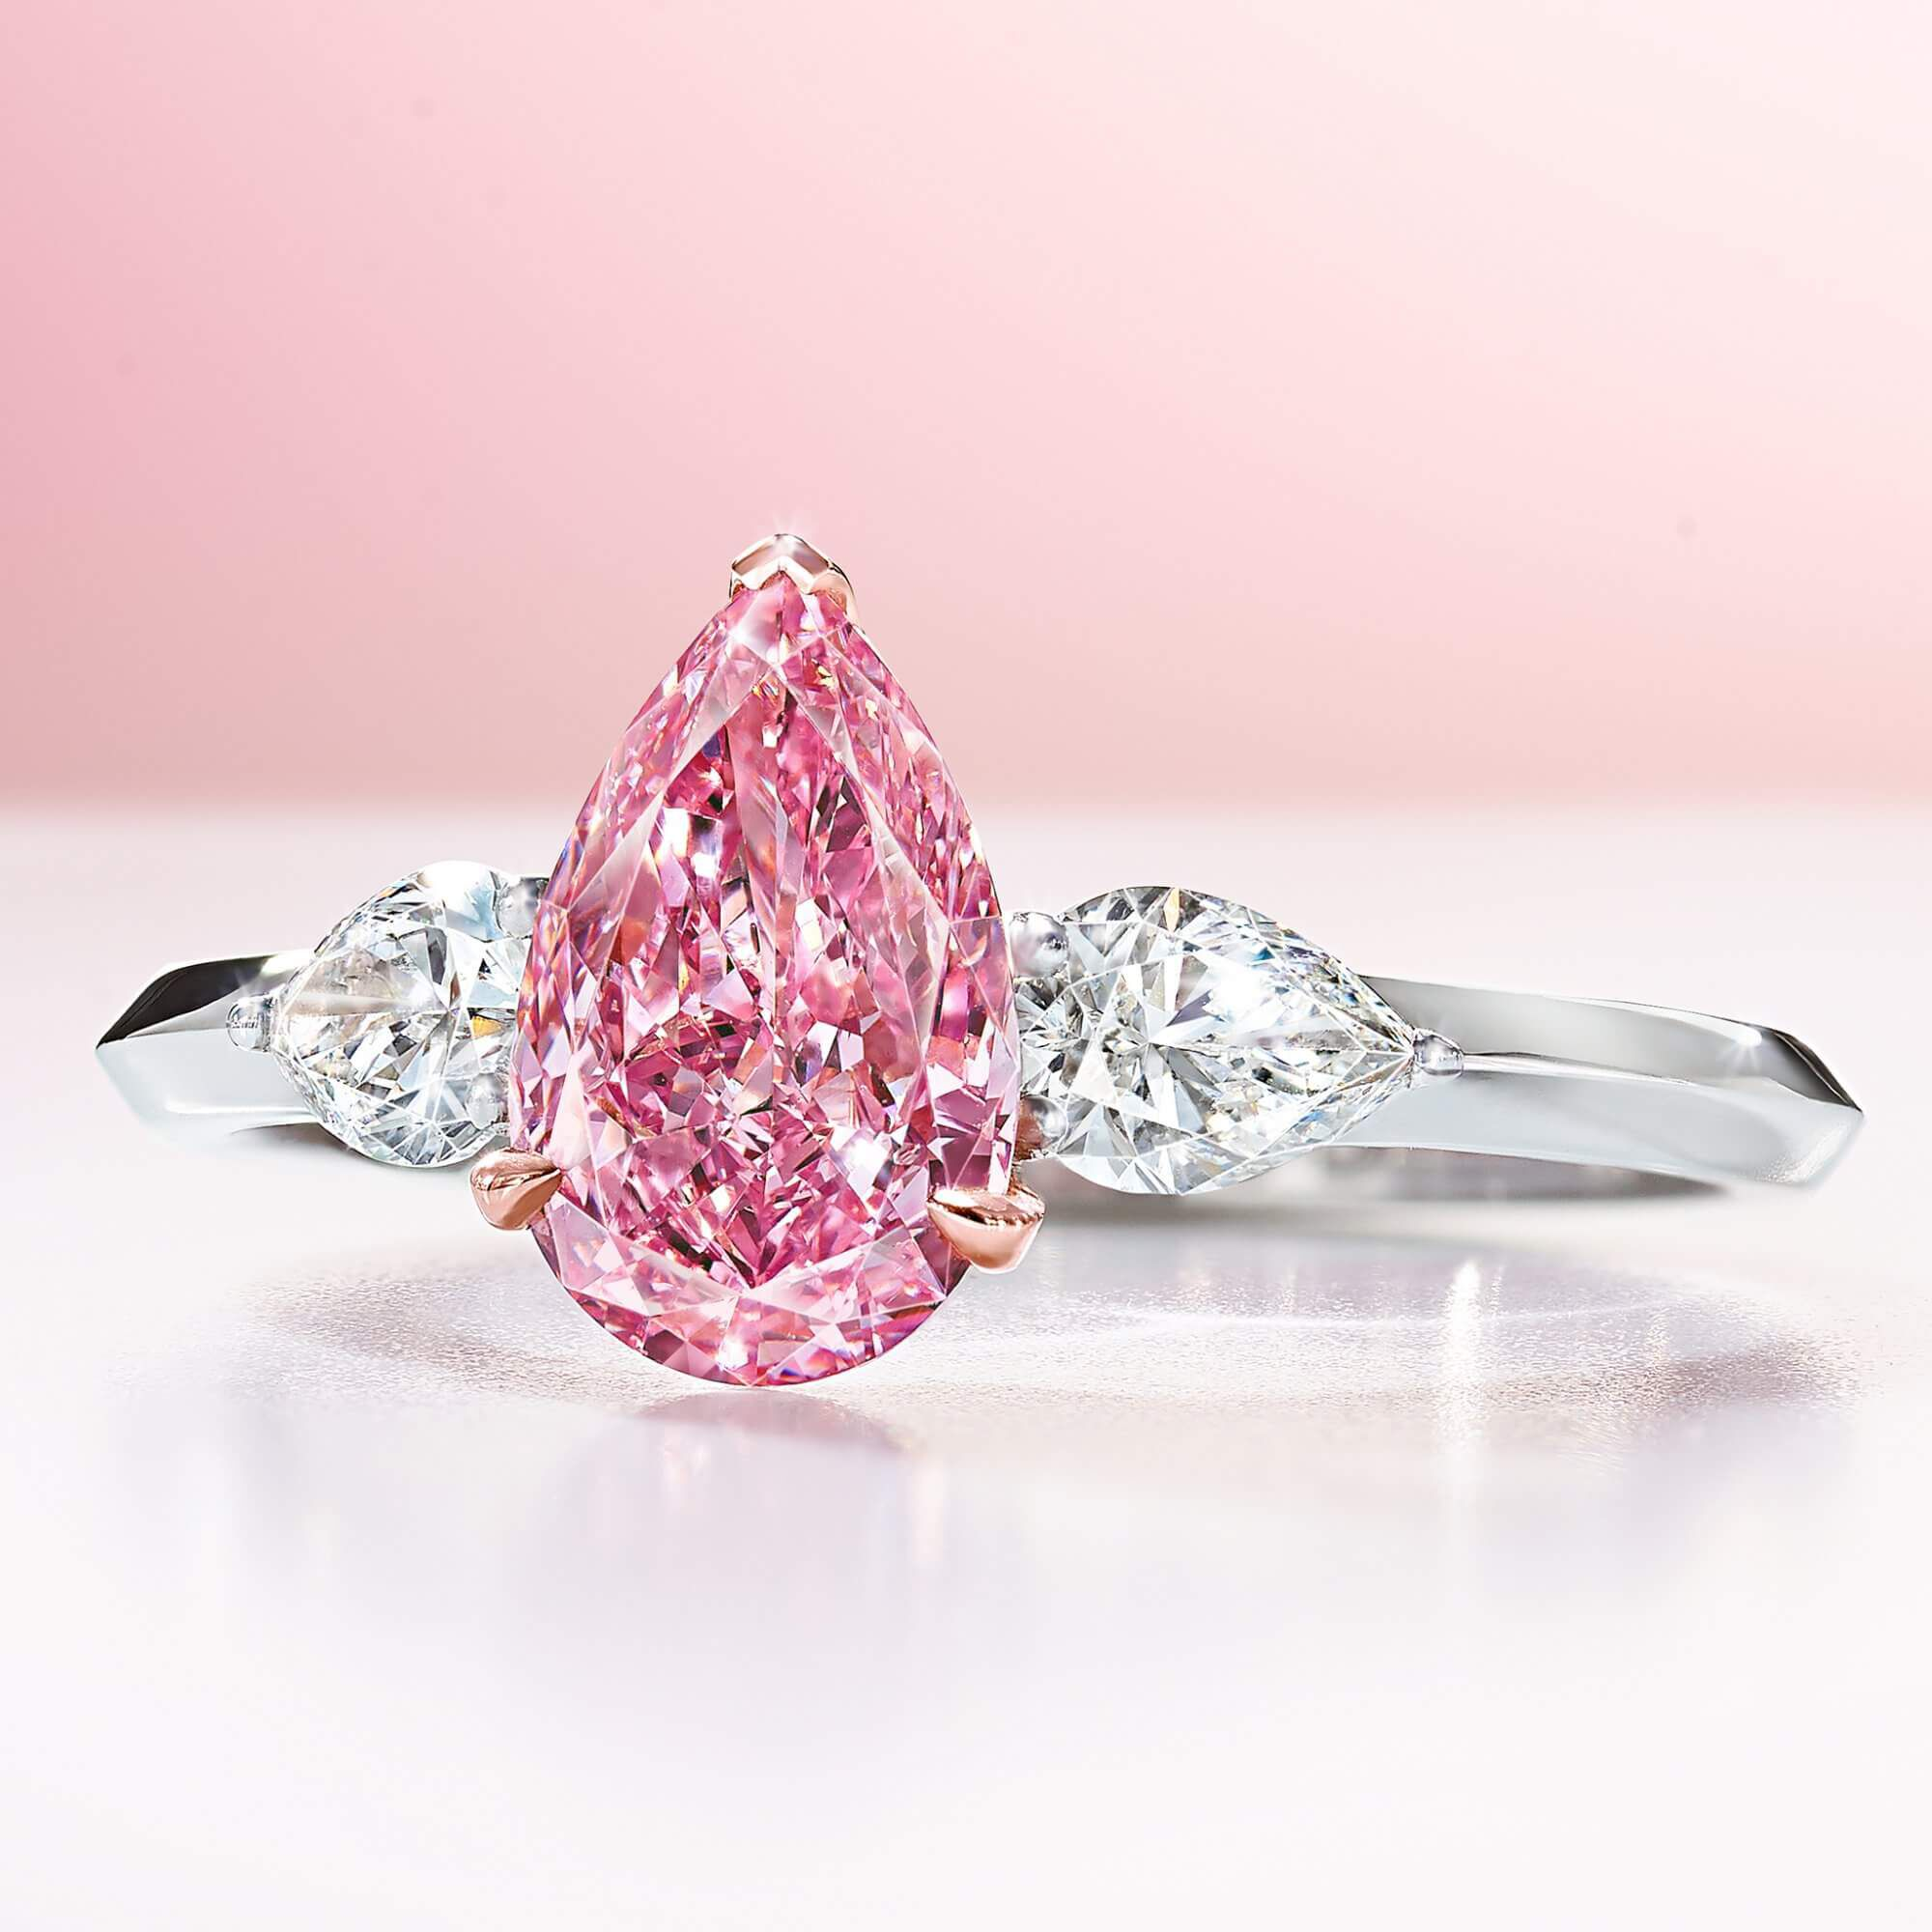 A 1.10 ct Fancy Vivid Pear Shape Pink Graff Diamond Ring - GR70875